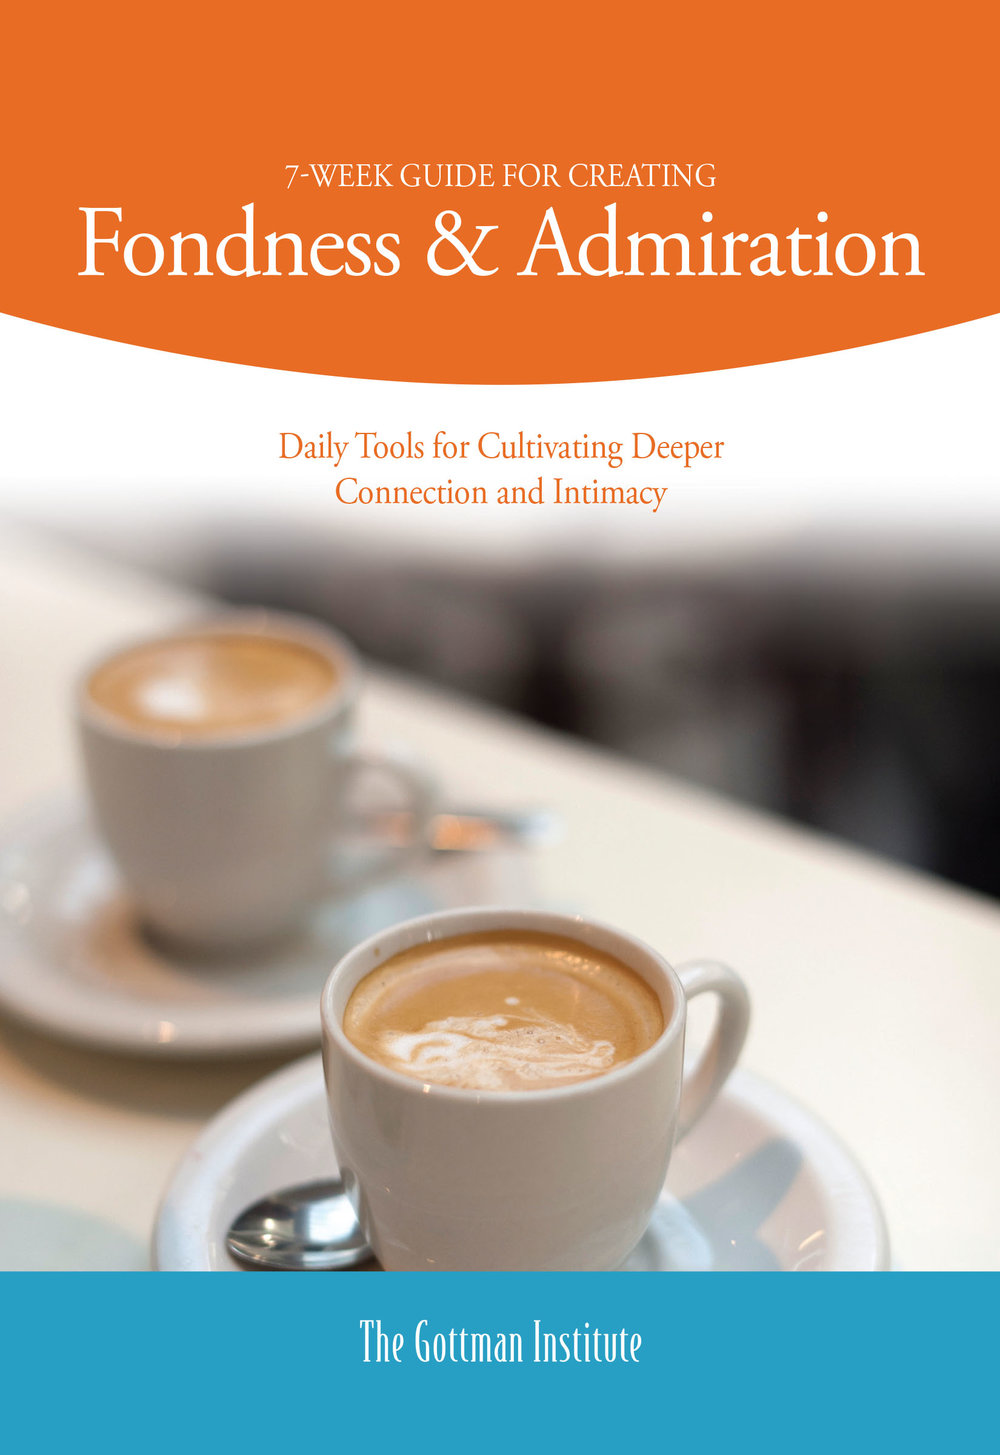 Fondness & Admiration - A 7-Week Guide to increase positive feelings about the relationship and create more connection and intimacy. Click on image for PDF.